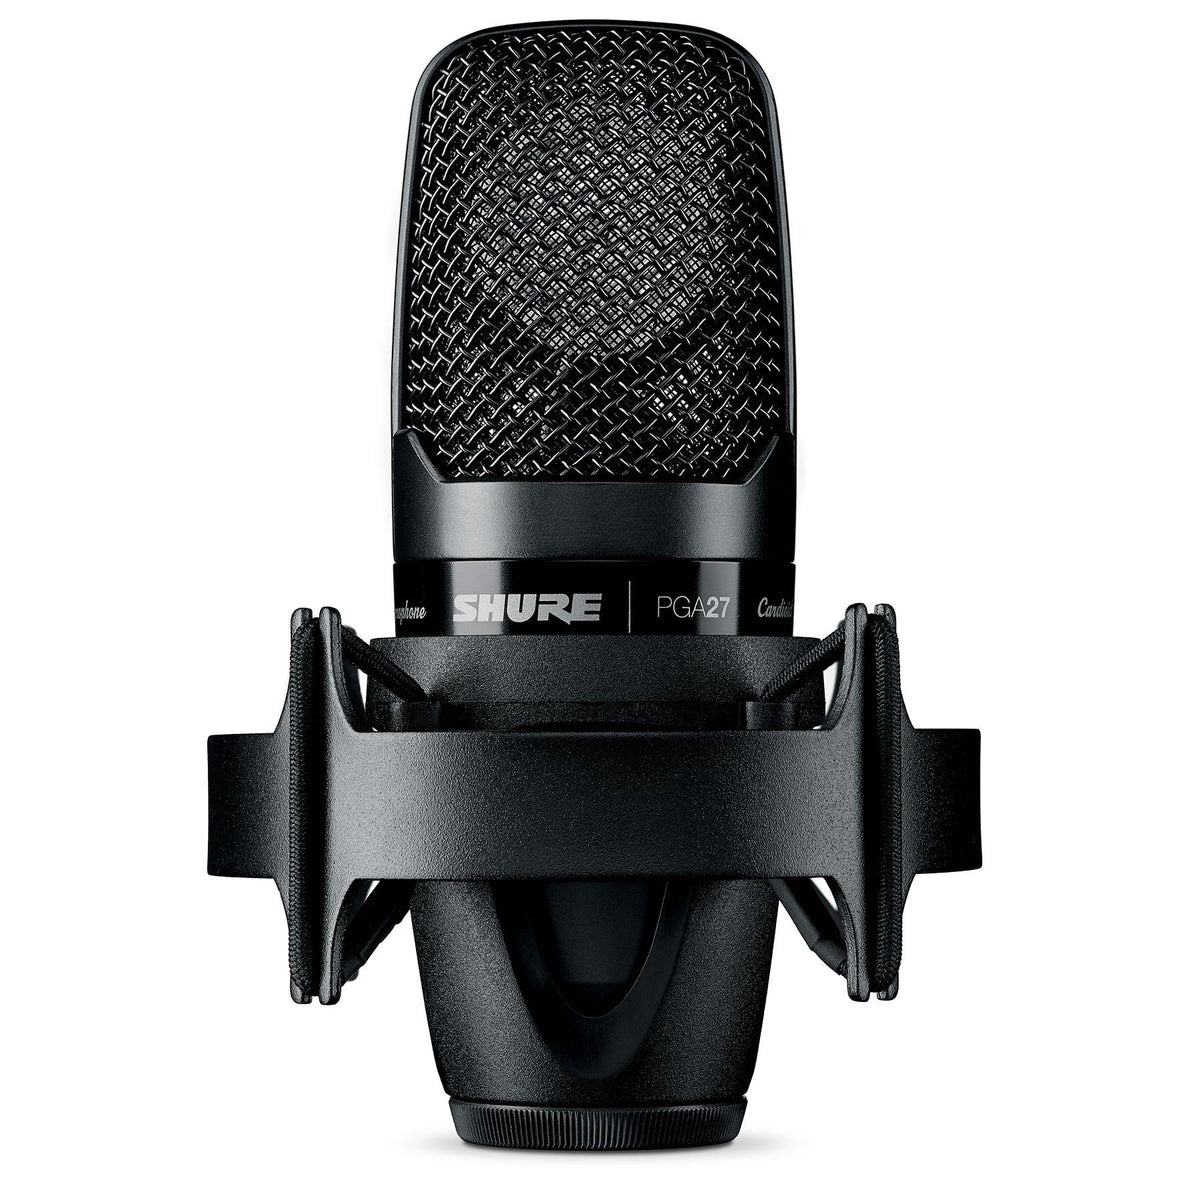 Shure PG Alta PGA27 Microphone with Shock Mount